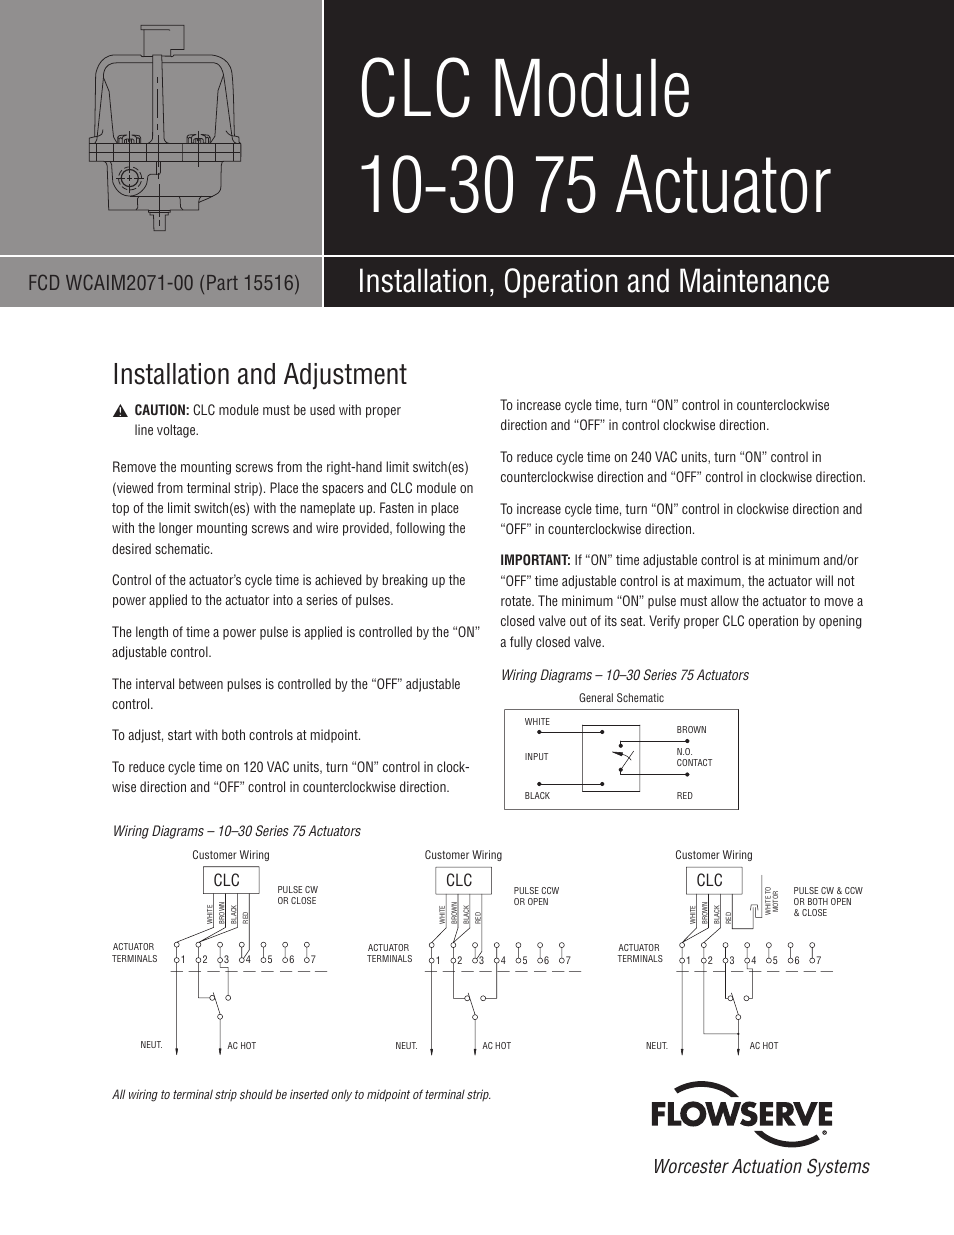 Flowserve Clc Module 10 30 75 Actuator User Manual 2 Pages Wiring Diagram